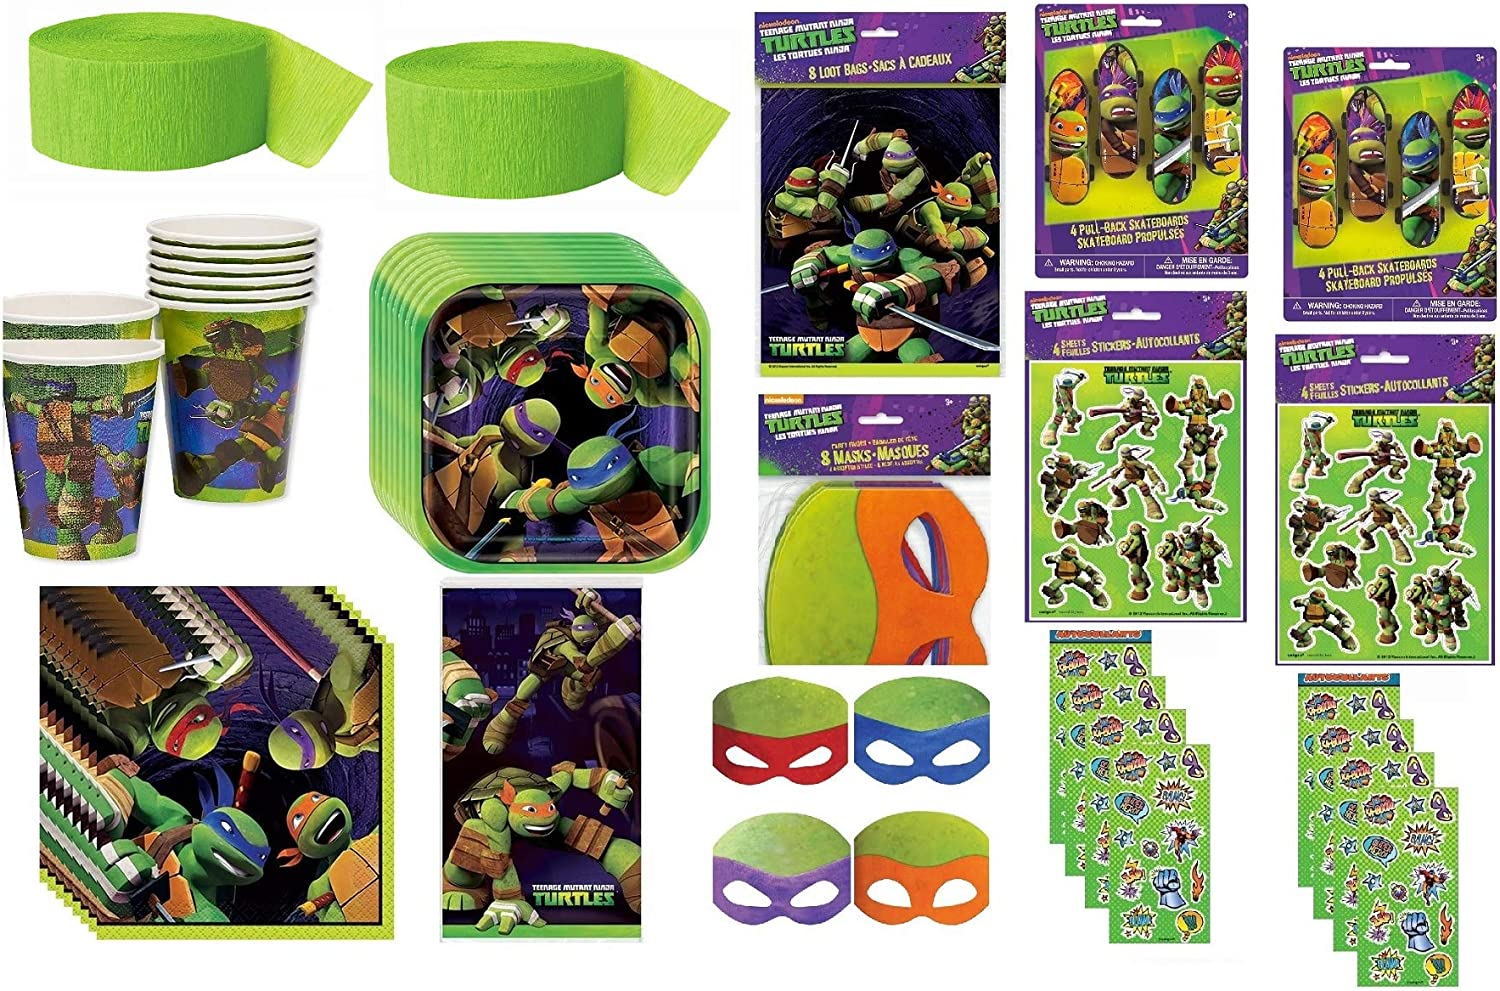 Teenage Mutant Ninja Turtles TMNT Party Supplies Bundle Pack Includes Plates, Cups, Napkins, Table Cover, Crepe Streamer, Favor Loot Bags, Stickers, Masks, Skateboards - Total 90 Pieces